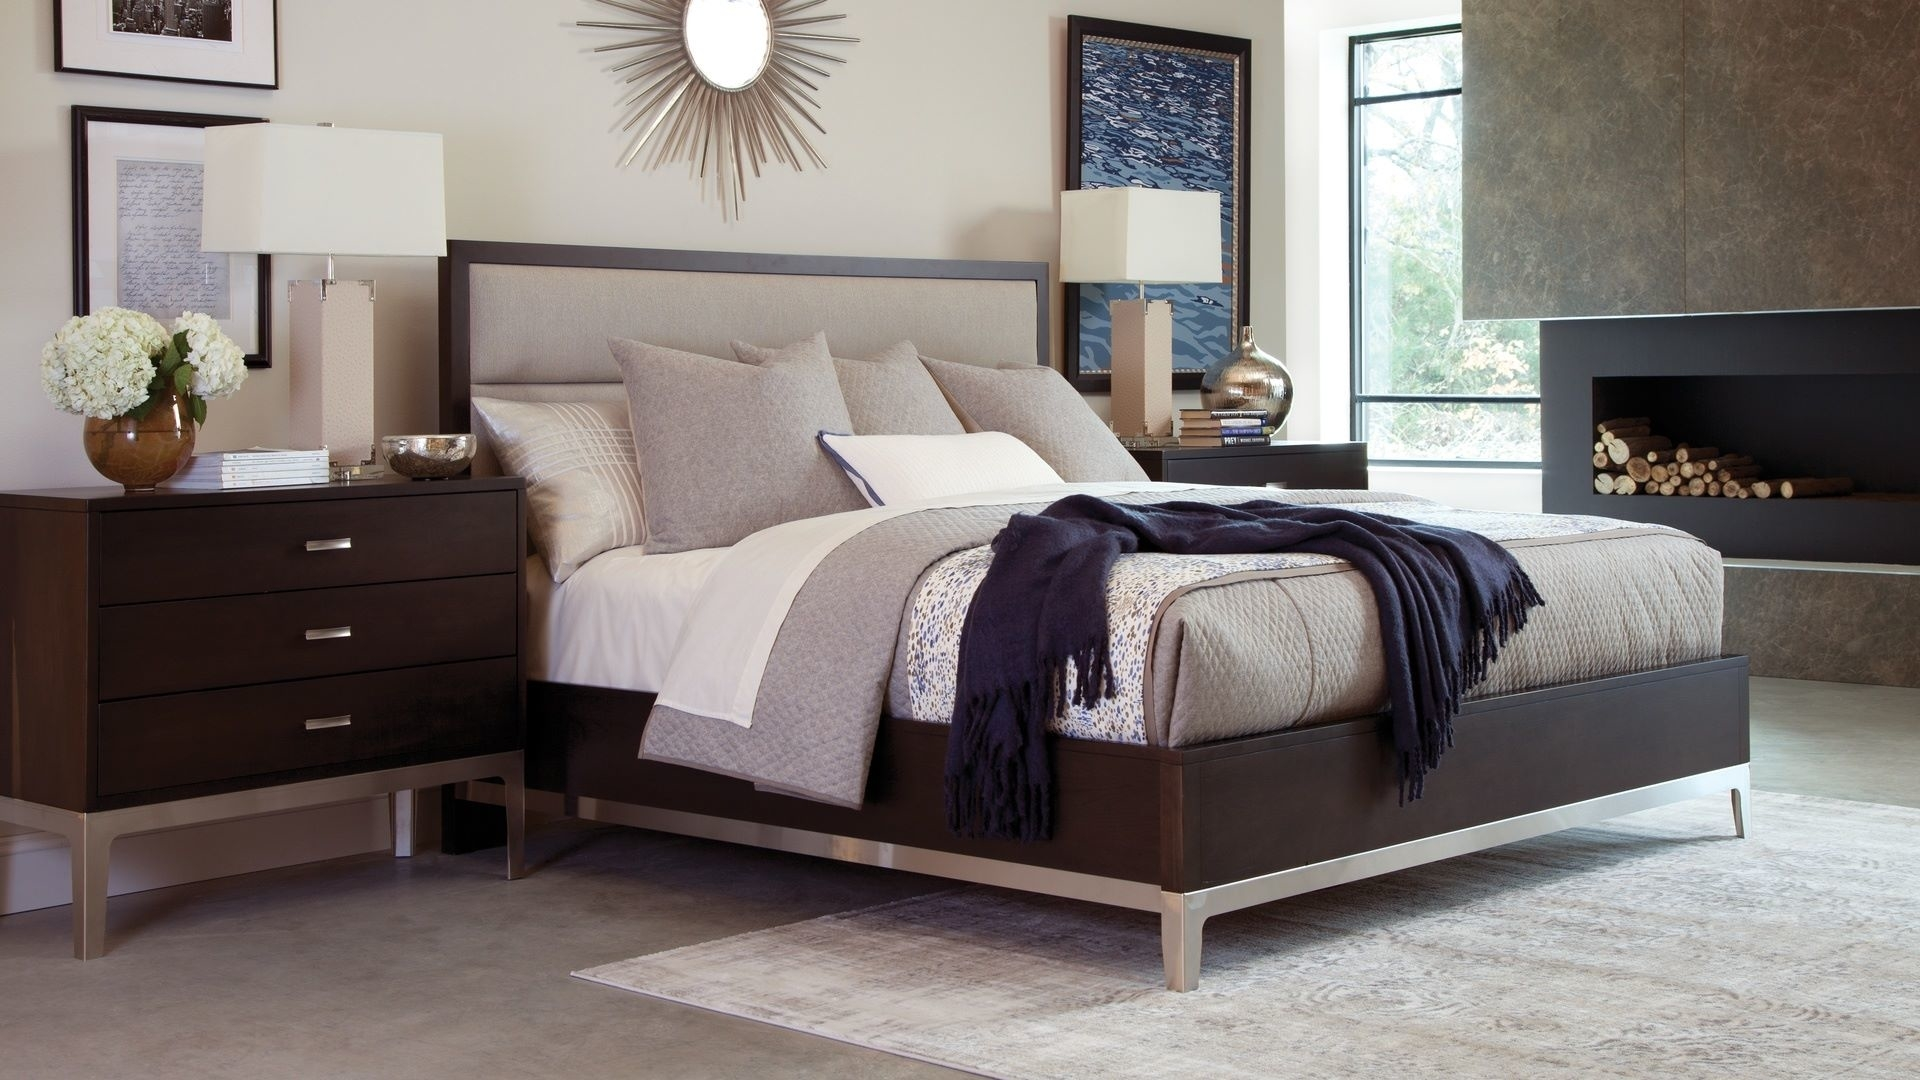 Perry's Furniture Quispamsis (506)847-1409